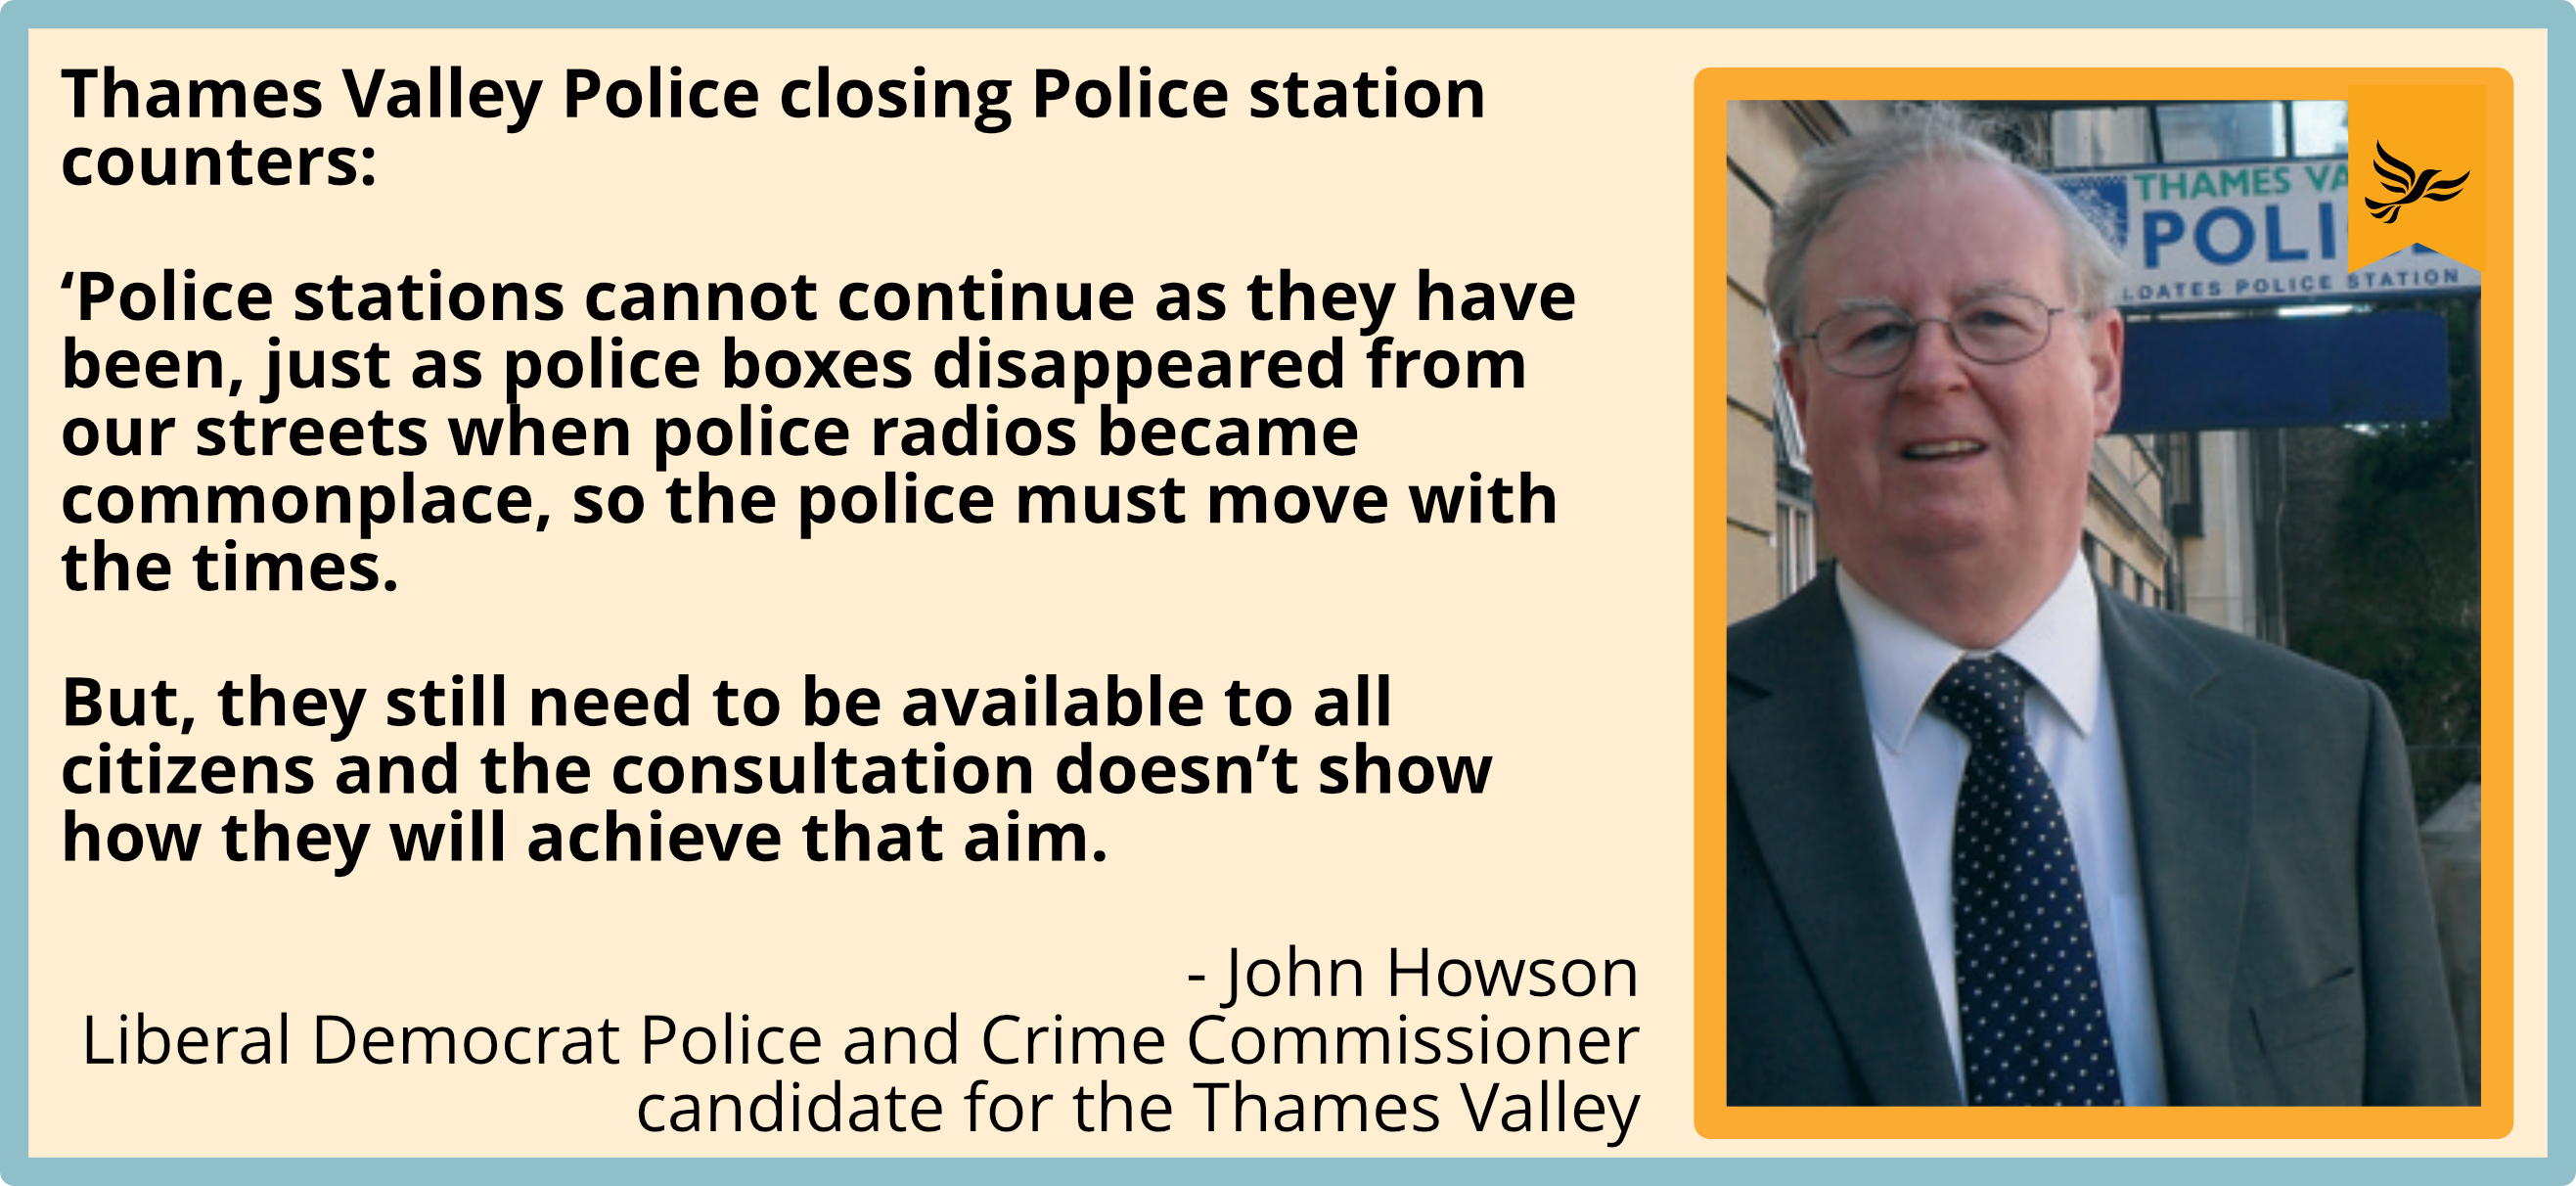 'Police stations cannot continue as they have been, just as police boxes disappeared from our streets when police radios became commonplace, so the police must move with the times. But, they still need to be available to all citizens and the consultation doesn't show how they will achieve that aim.